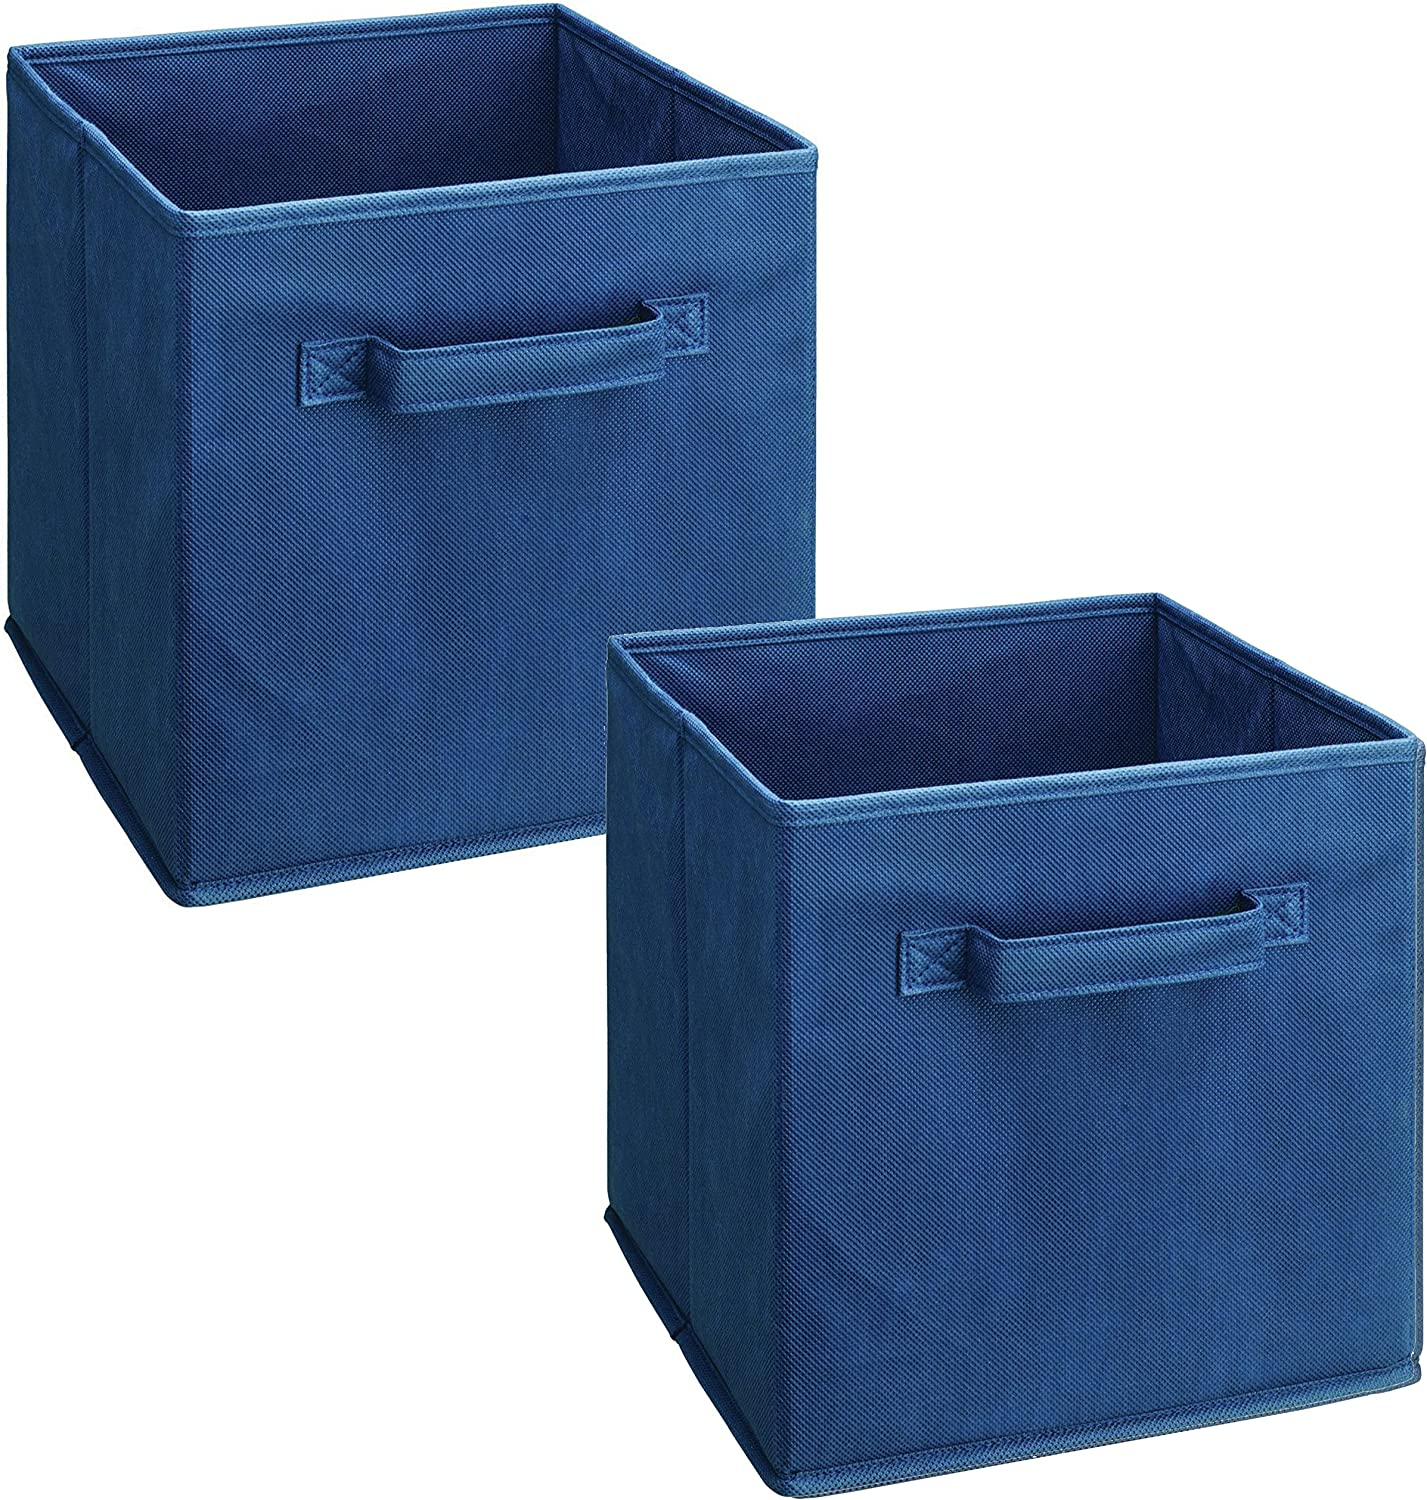 ClosetMaid 1433 Cubeicals Fabric Drawers, Blue, 2-Pack